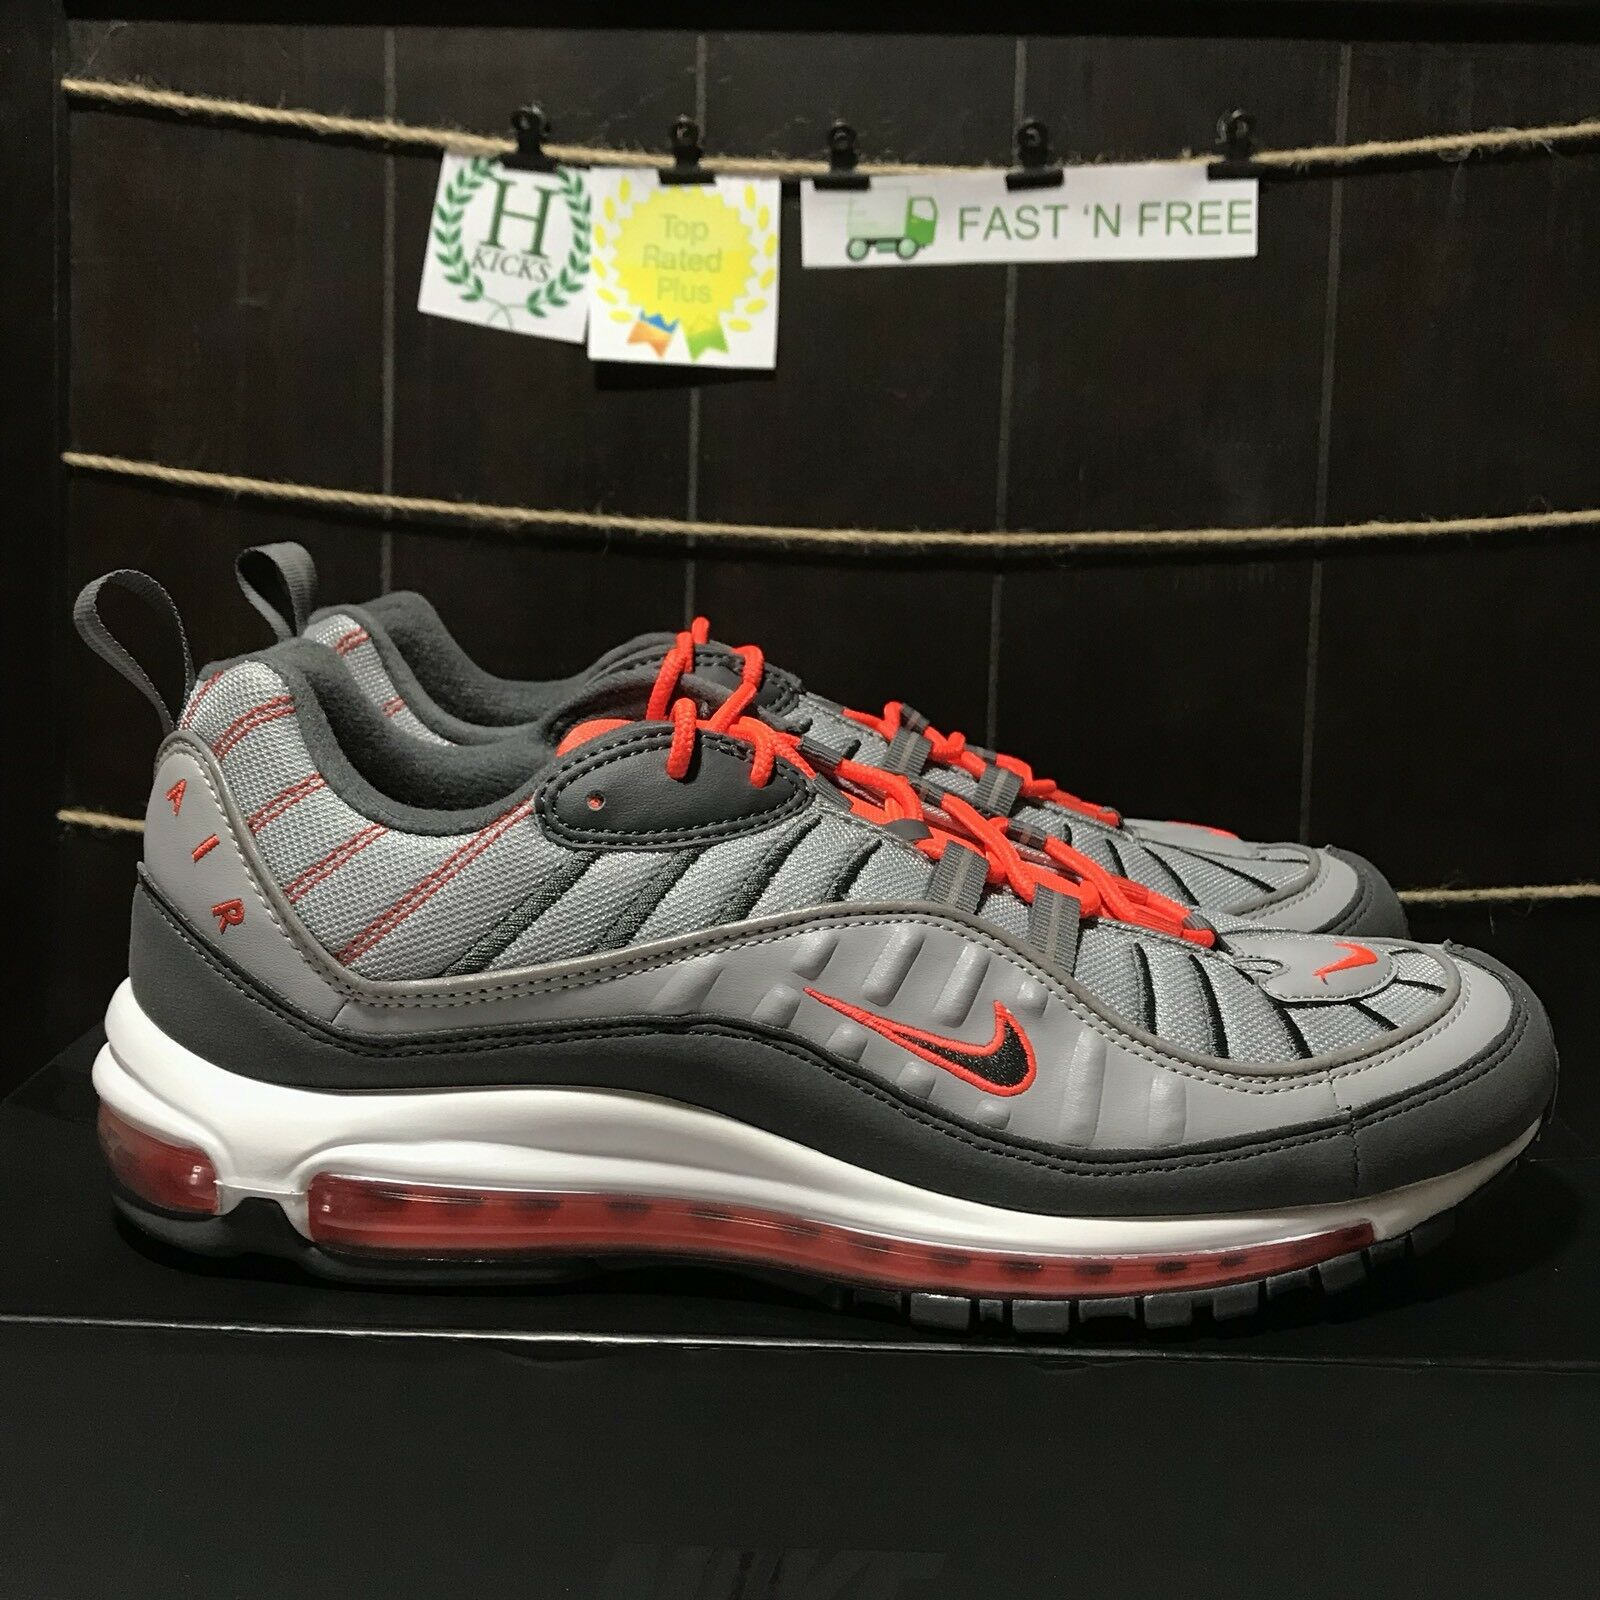 Nike Air Max 98 Wolf Grey Orange White Total Crimson 640744 006 Size 12.5